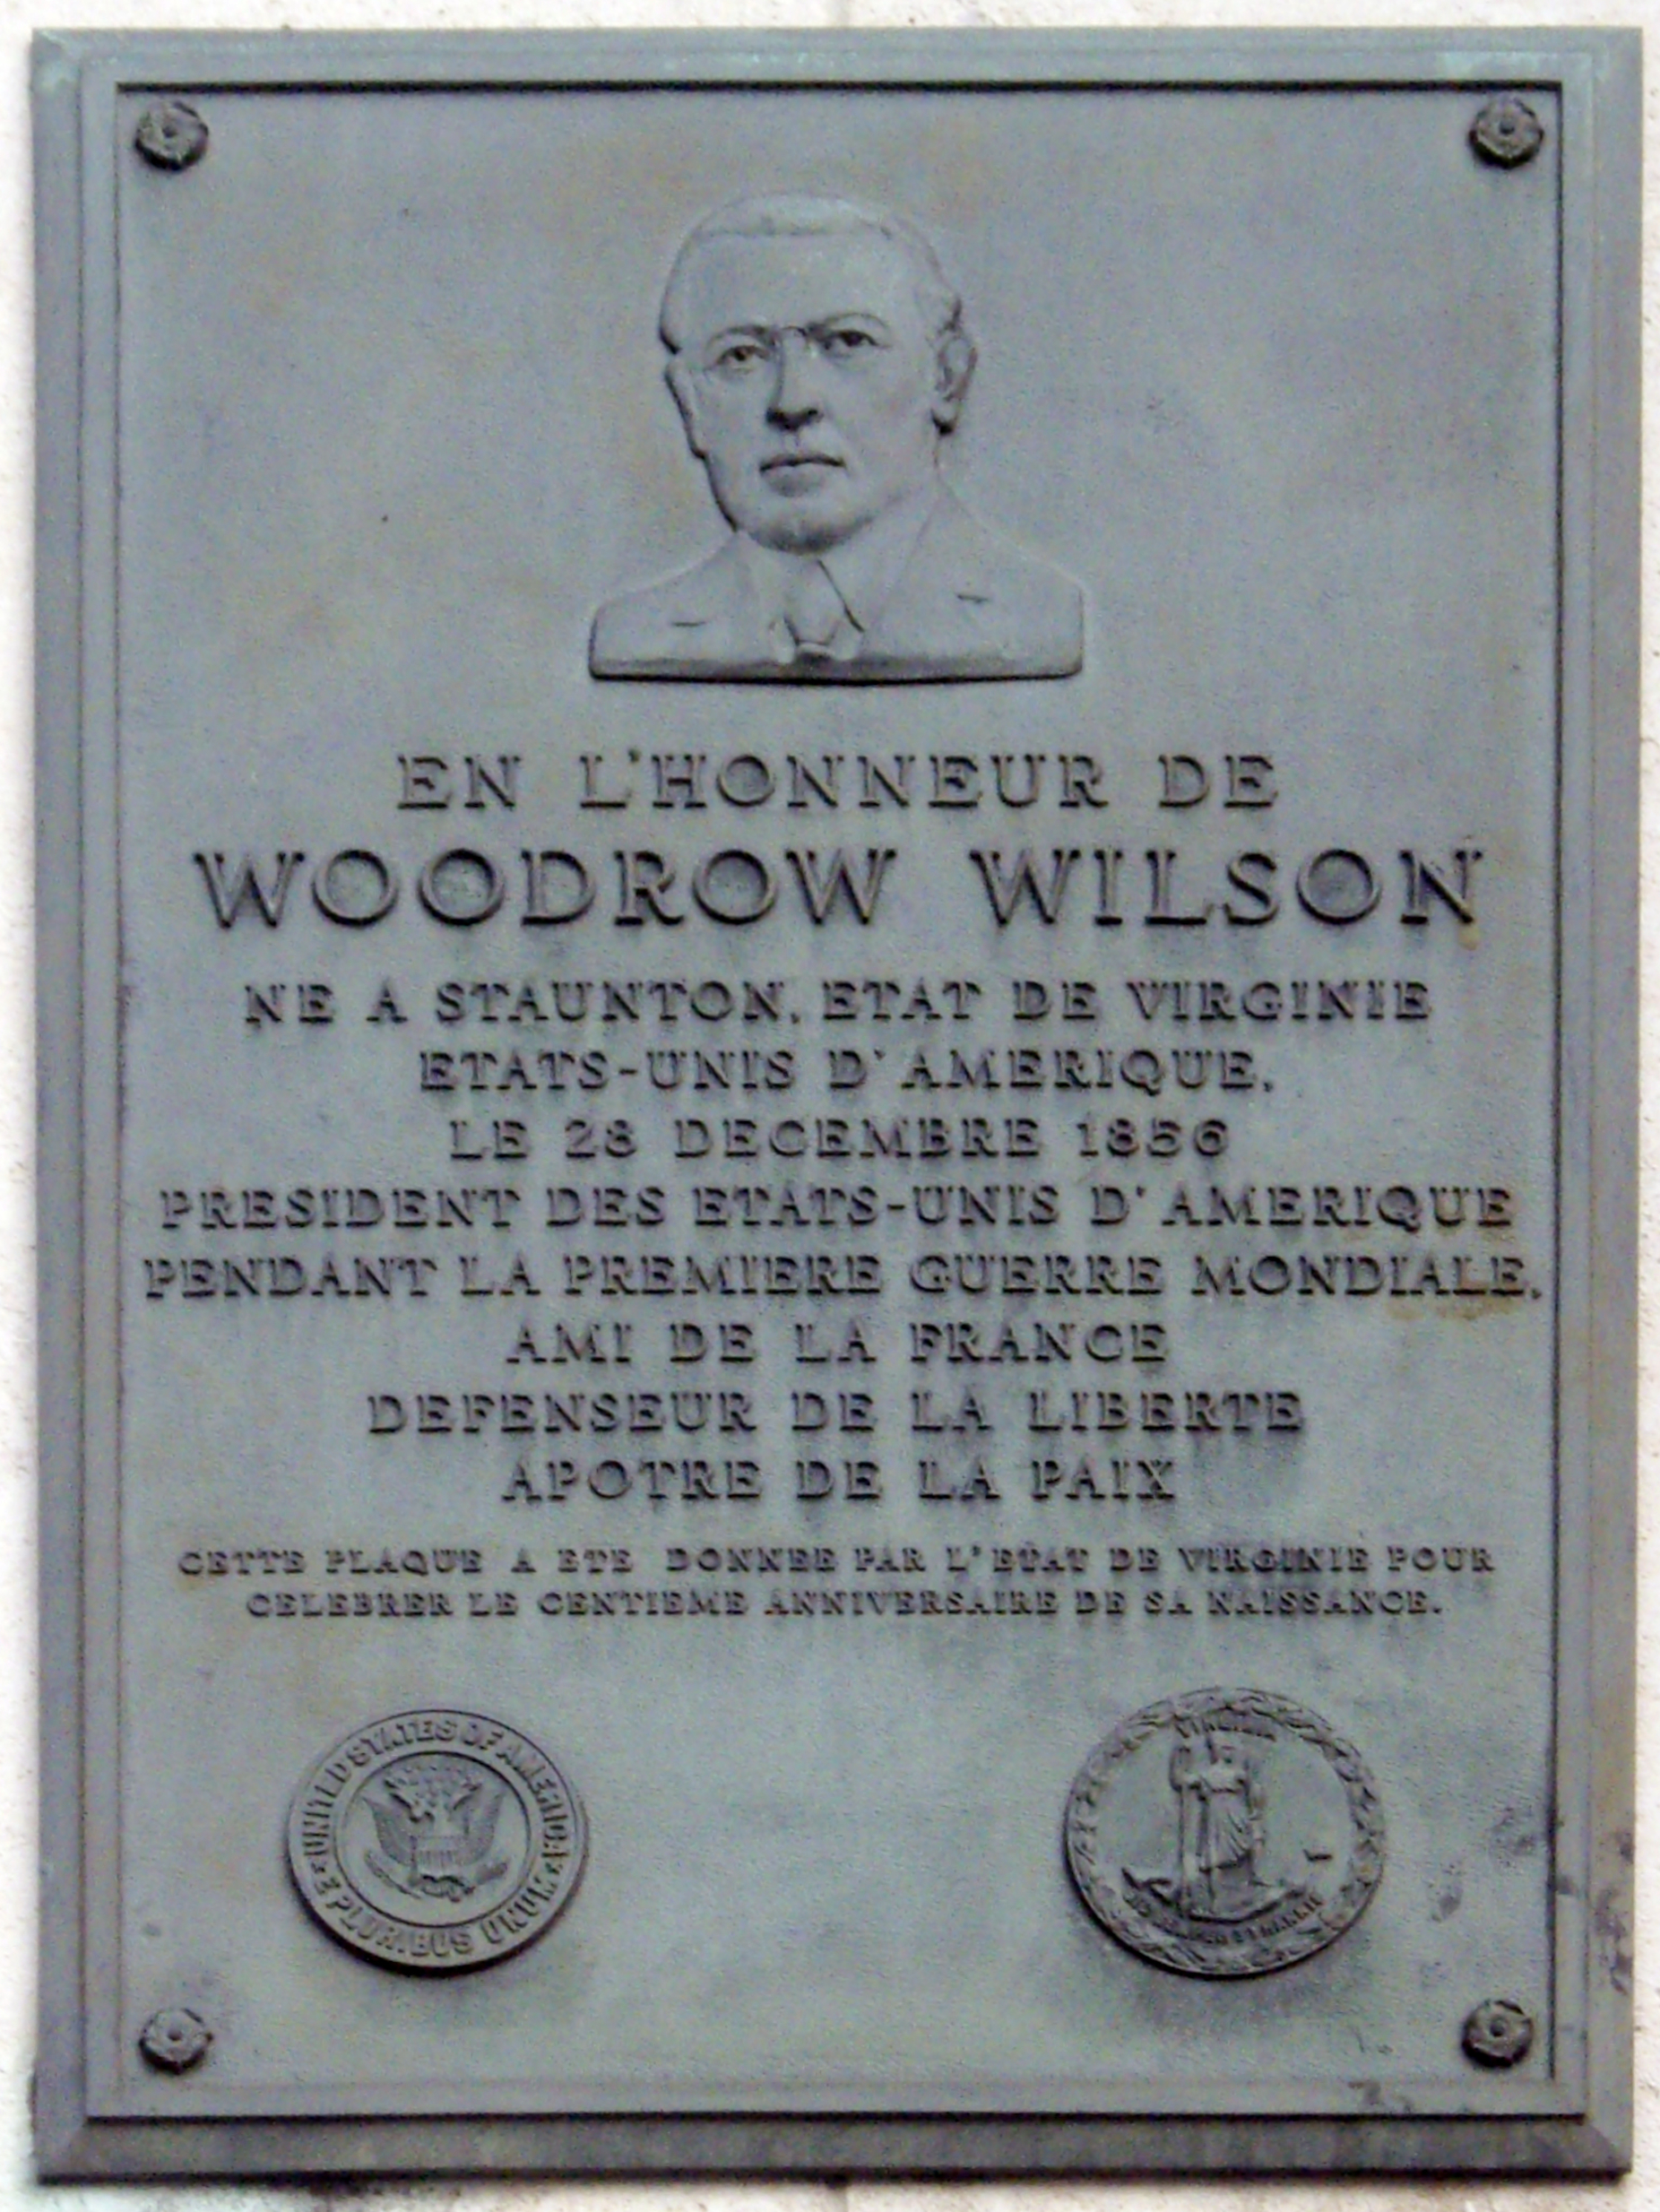 woodrwo wilson in first person essay Since president woodrow wilson's 1913 address, there have been 82 in-person state of the union addresses to congress.